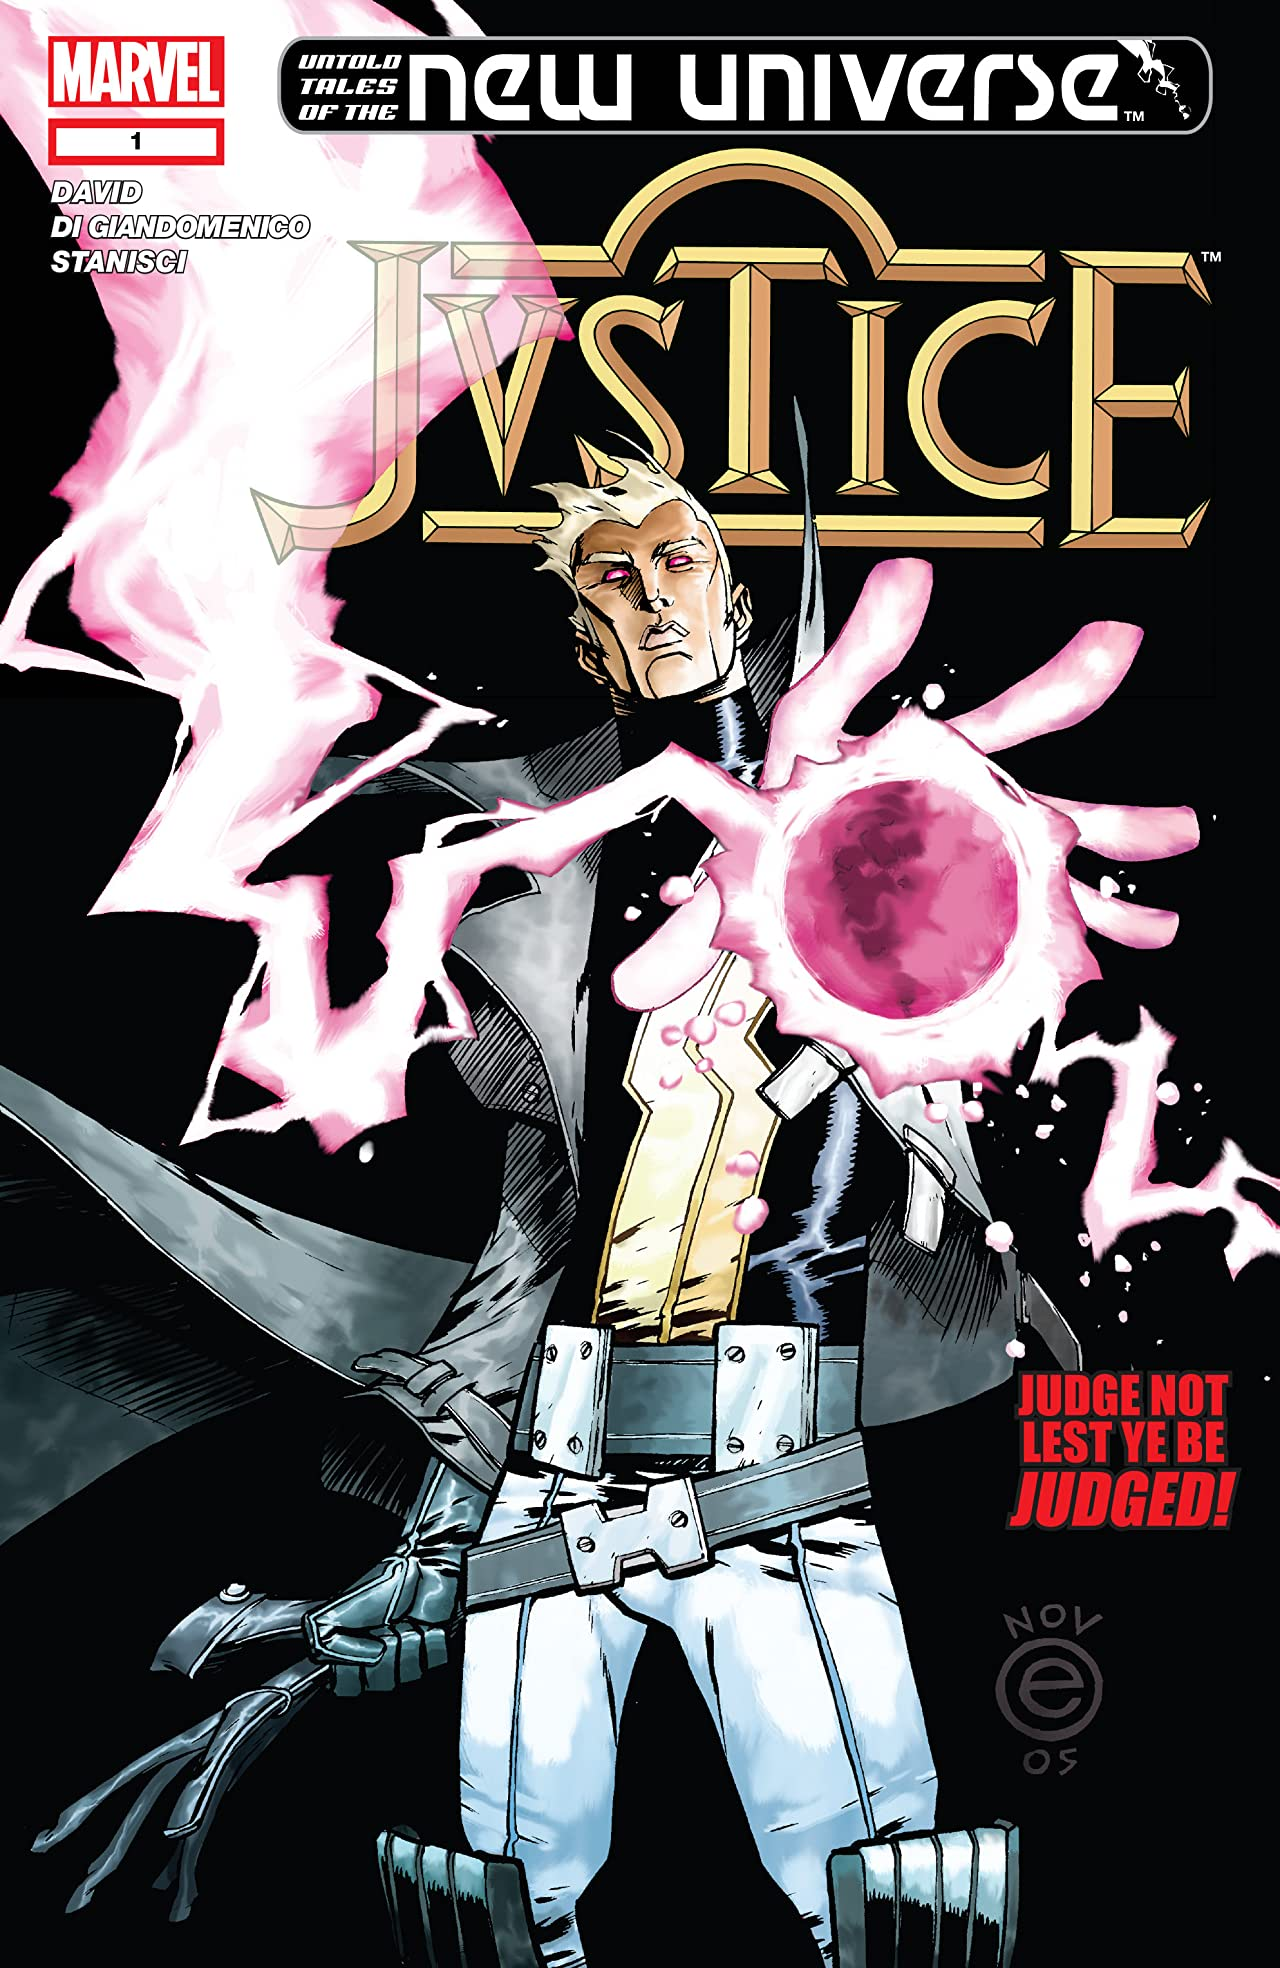 Untold Tales of the New Universe: Justice (2006) #1